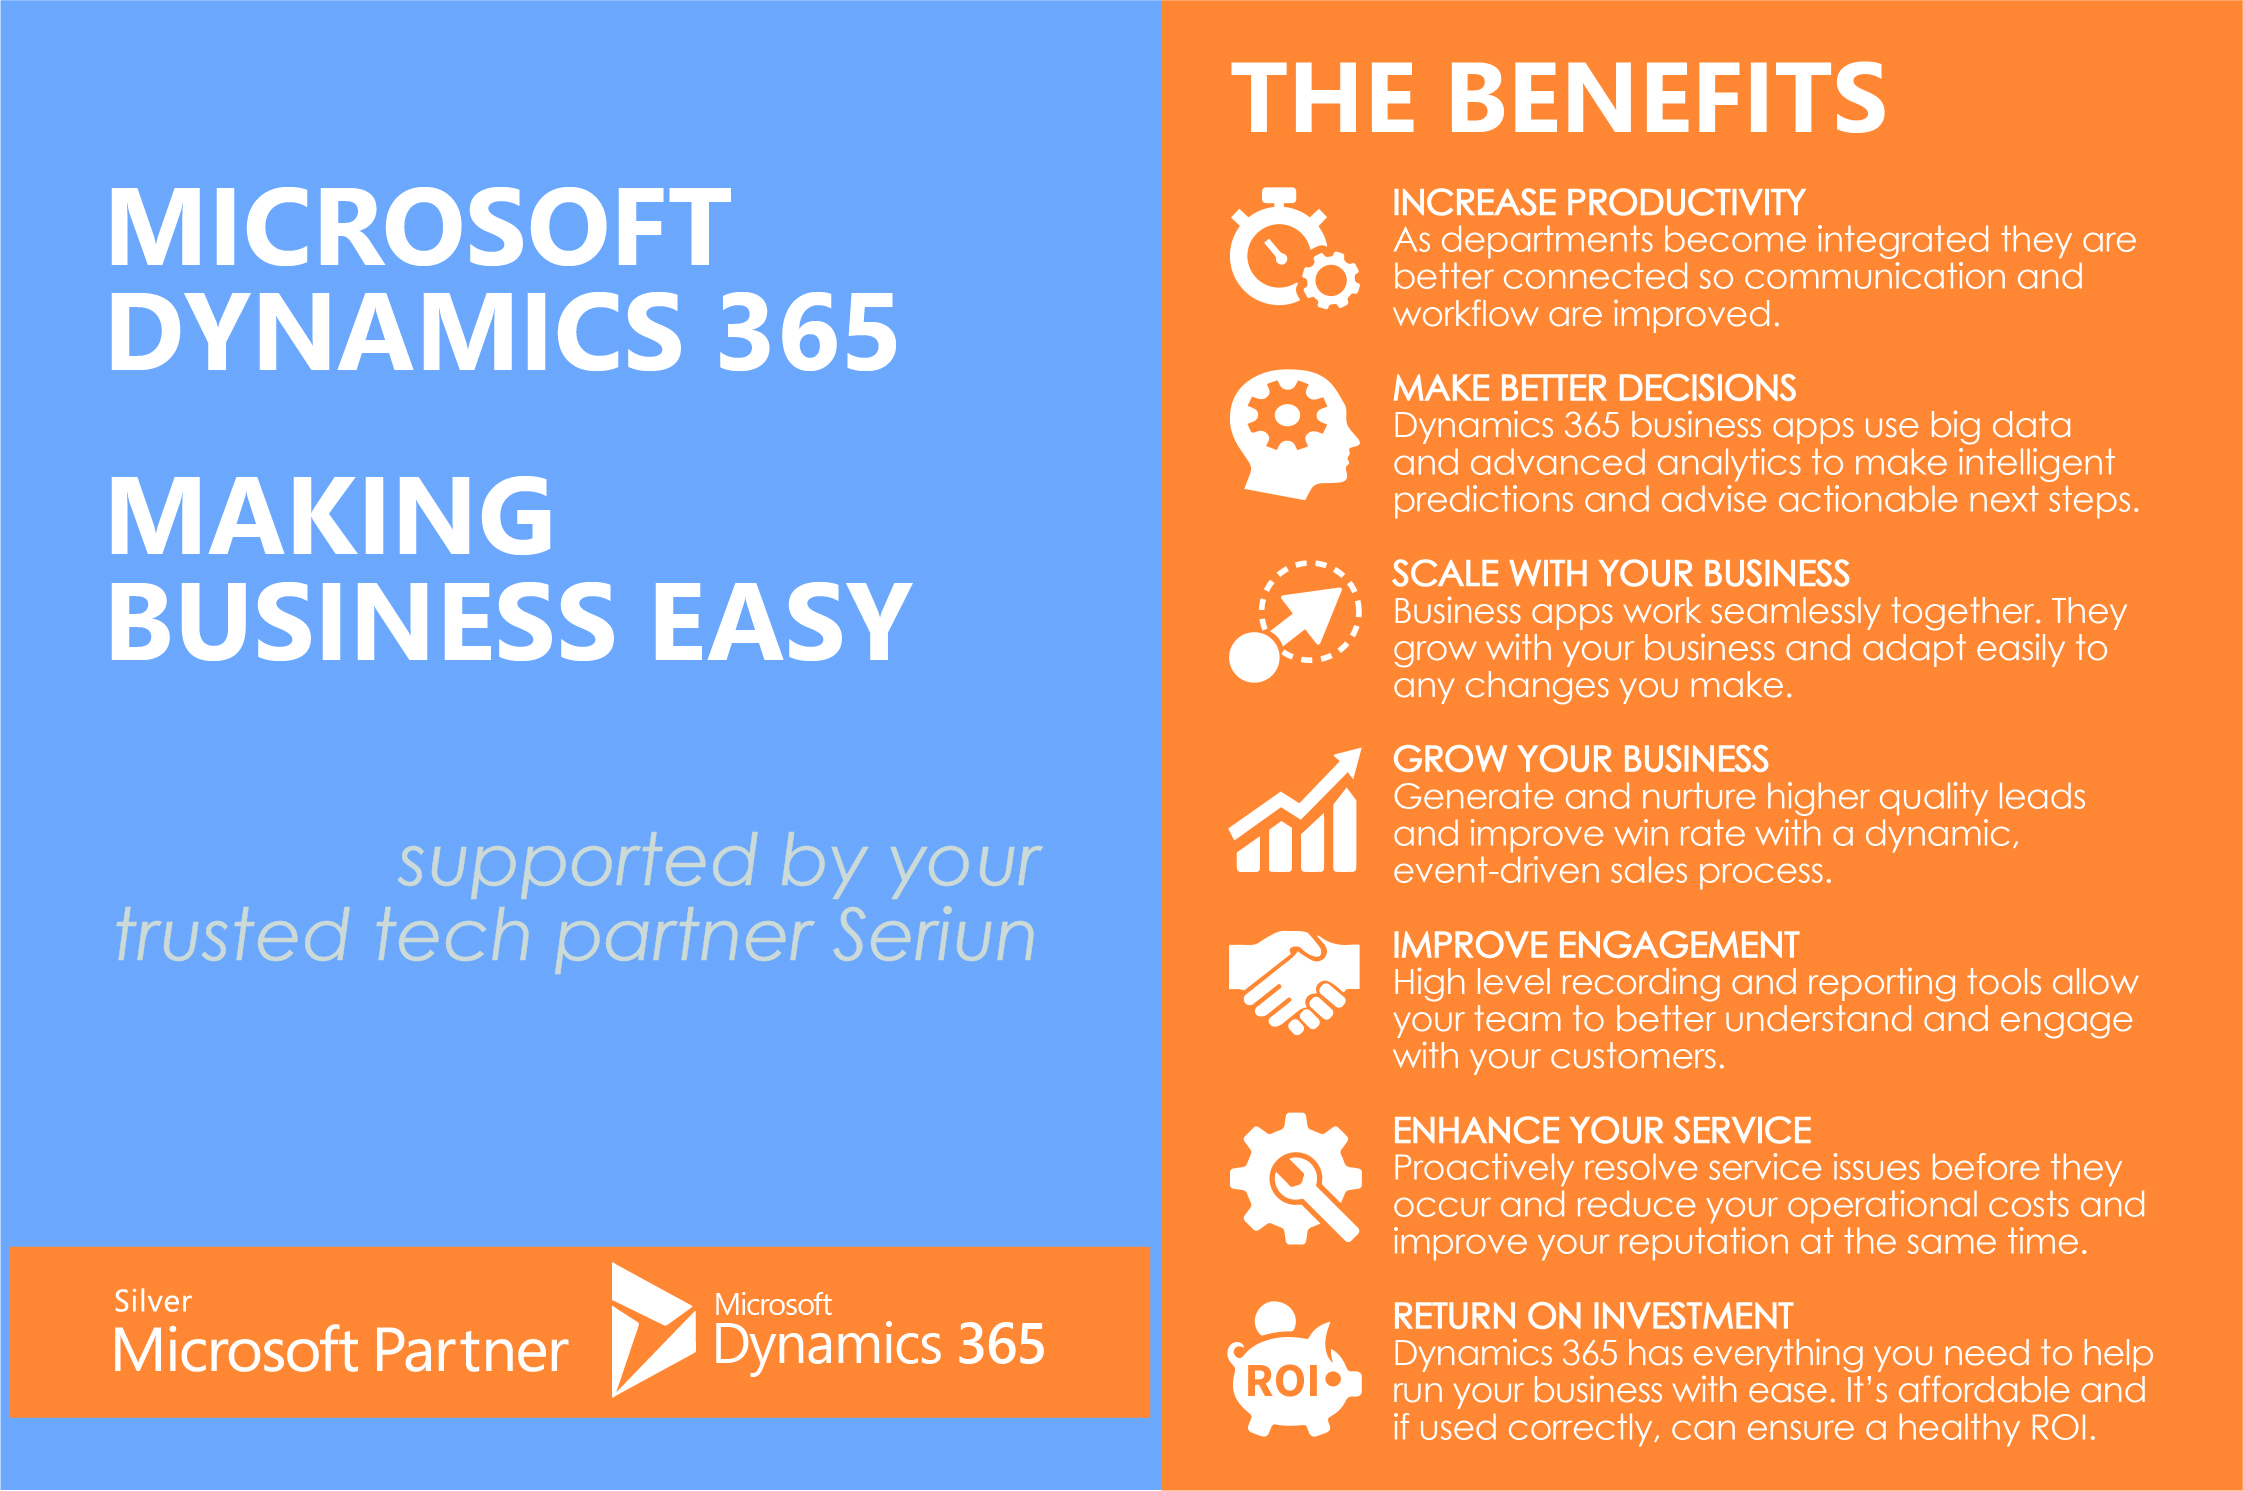 MICROSOFT DYNAMICS 365 – TODAY'S ESSENTIAL BUSINESS TOOL